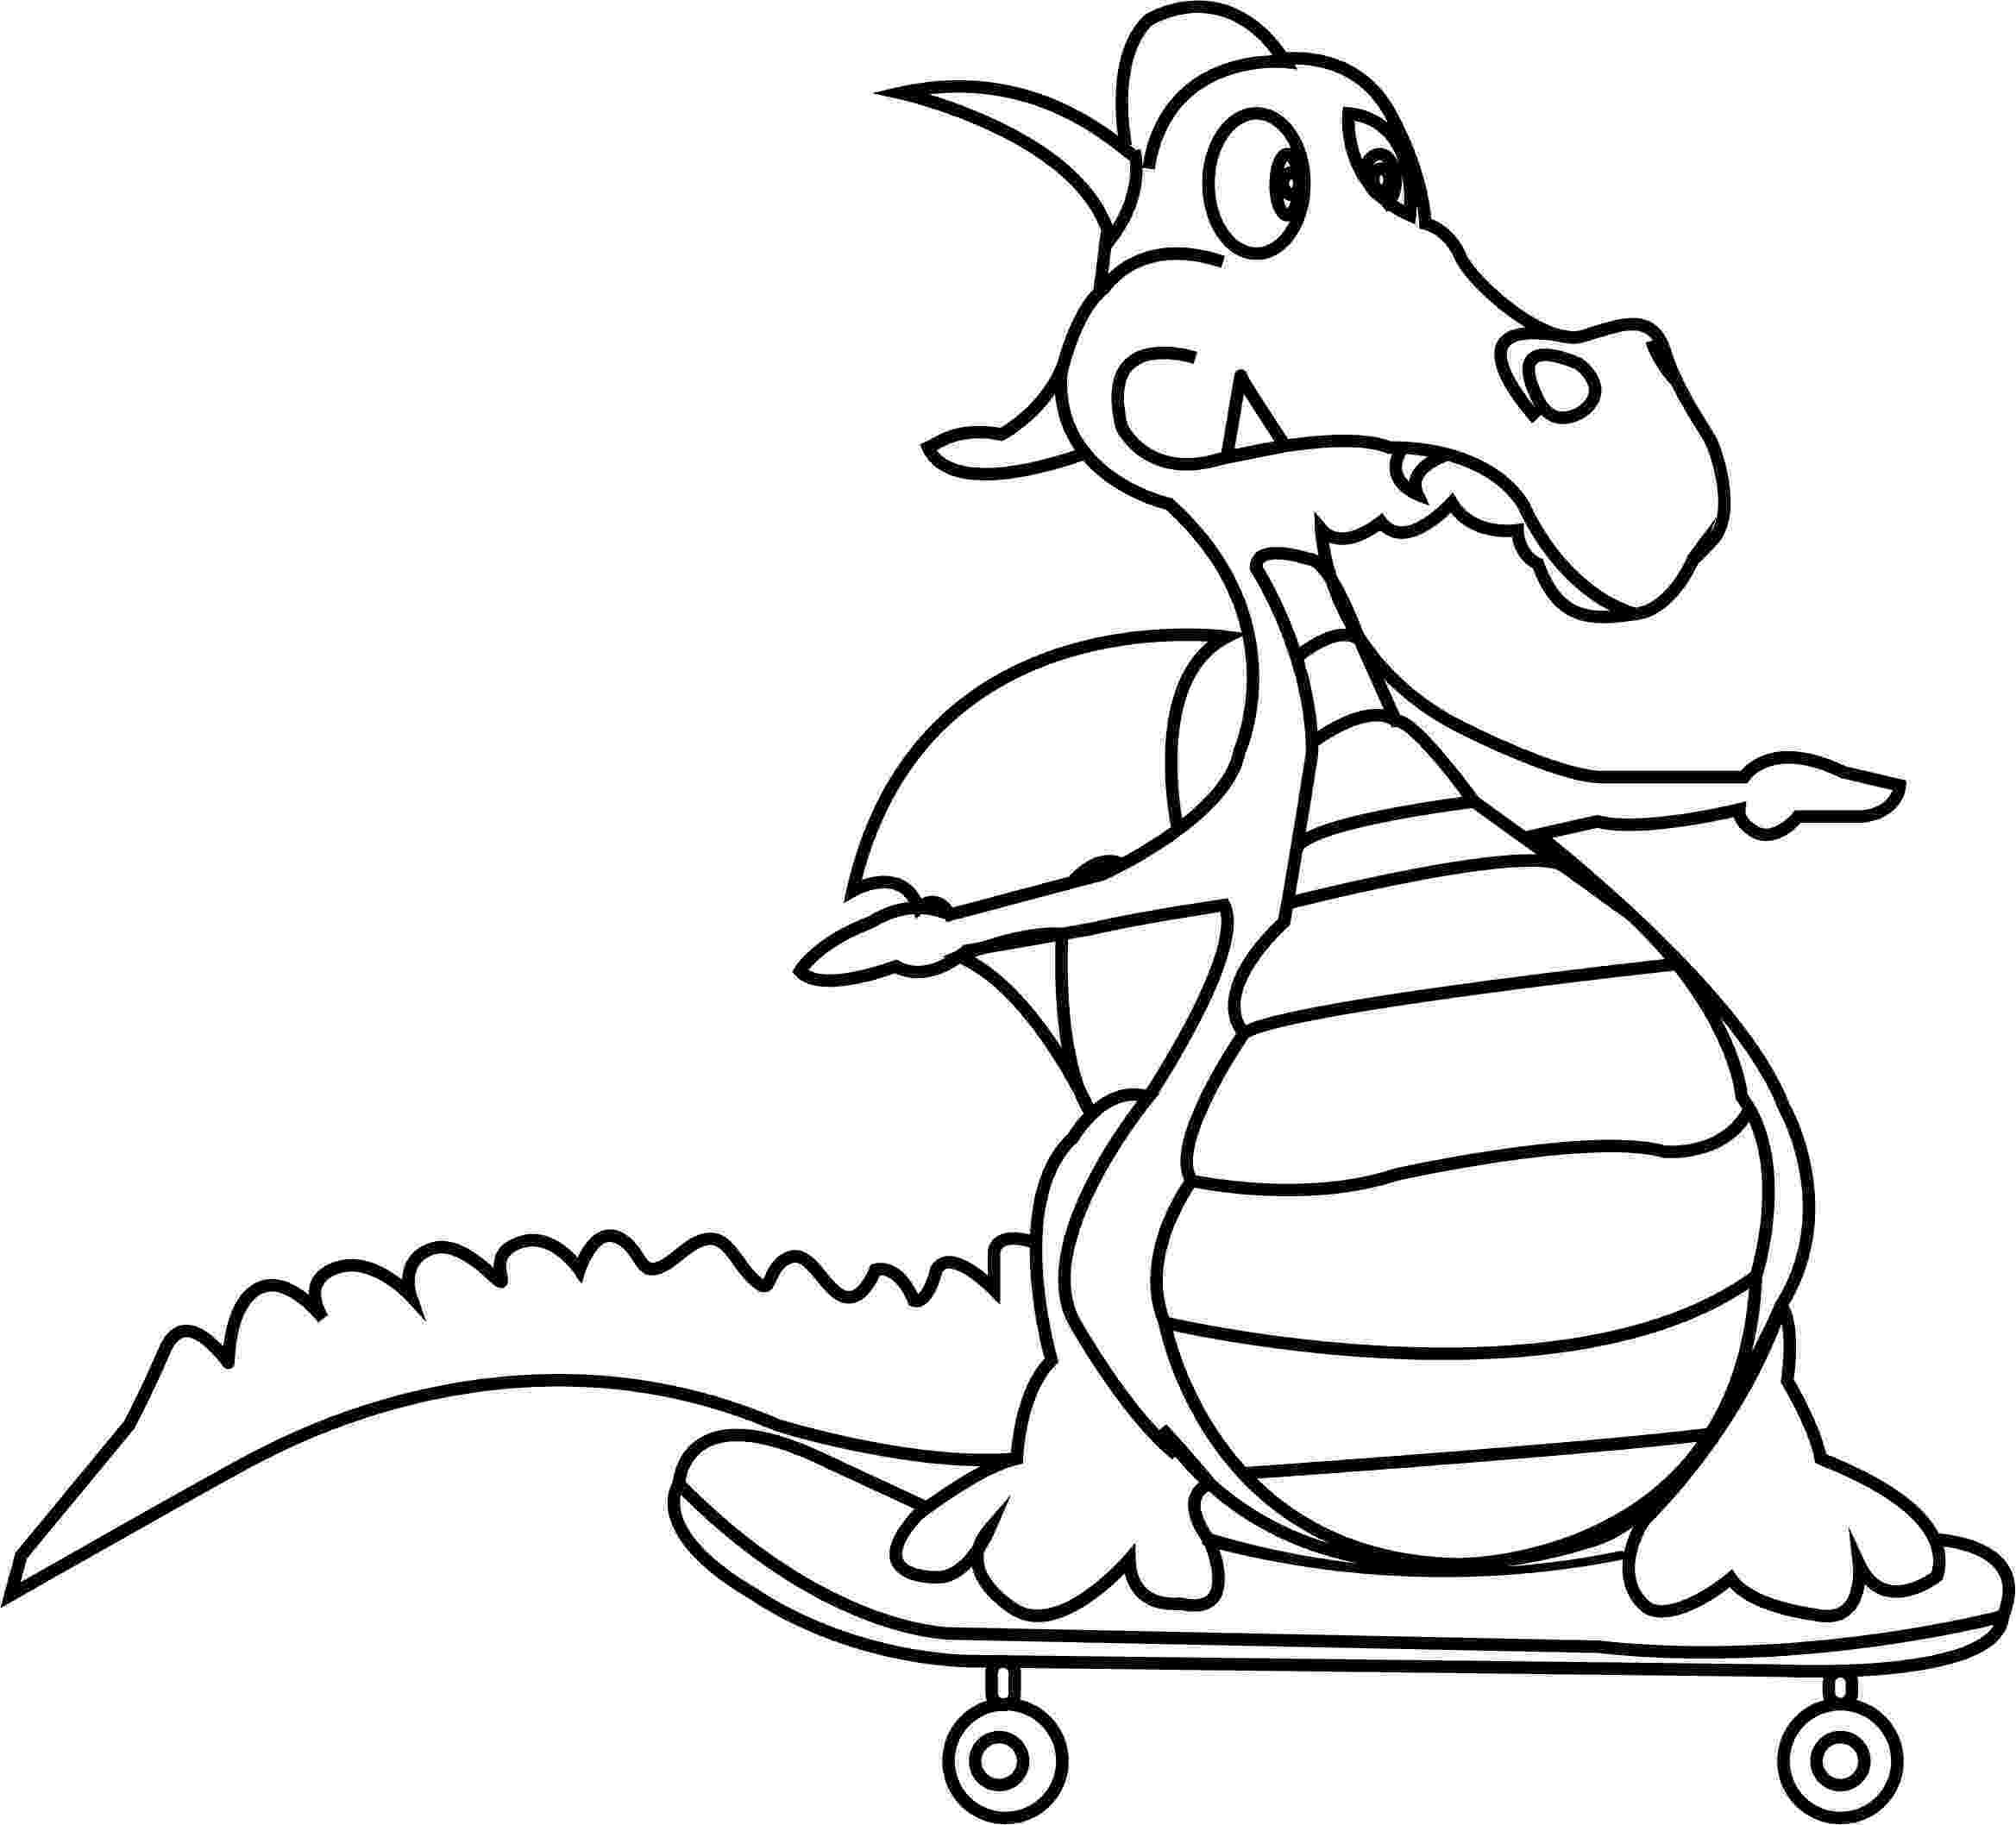 awesome coloring pages for kids cool boy kids soldier coloring page wecoloringpage coloring awesome pages kids for